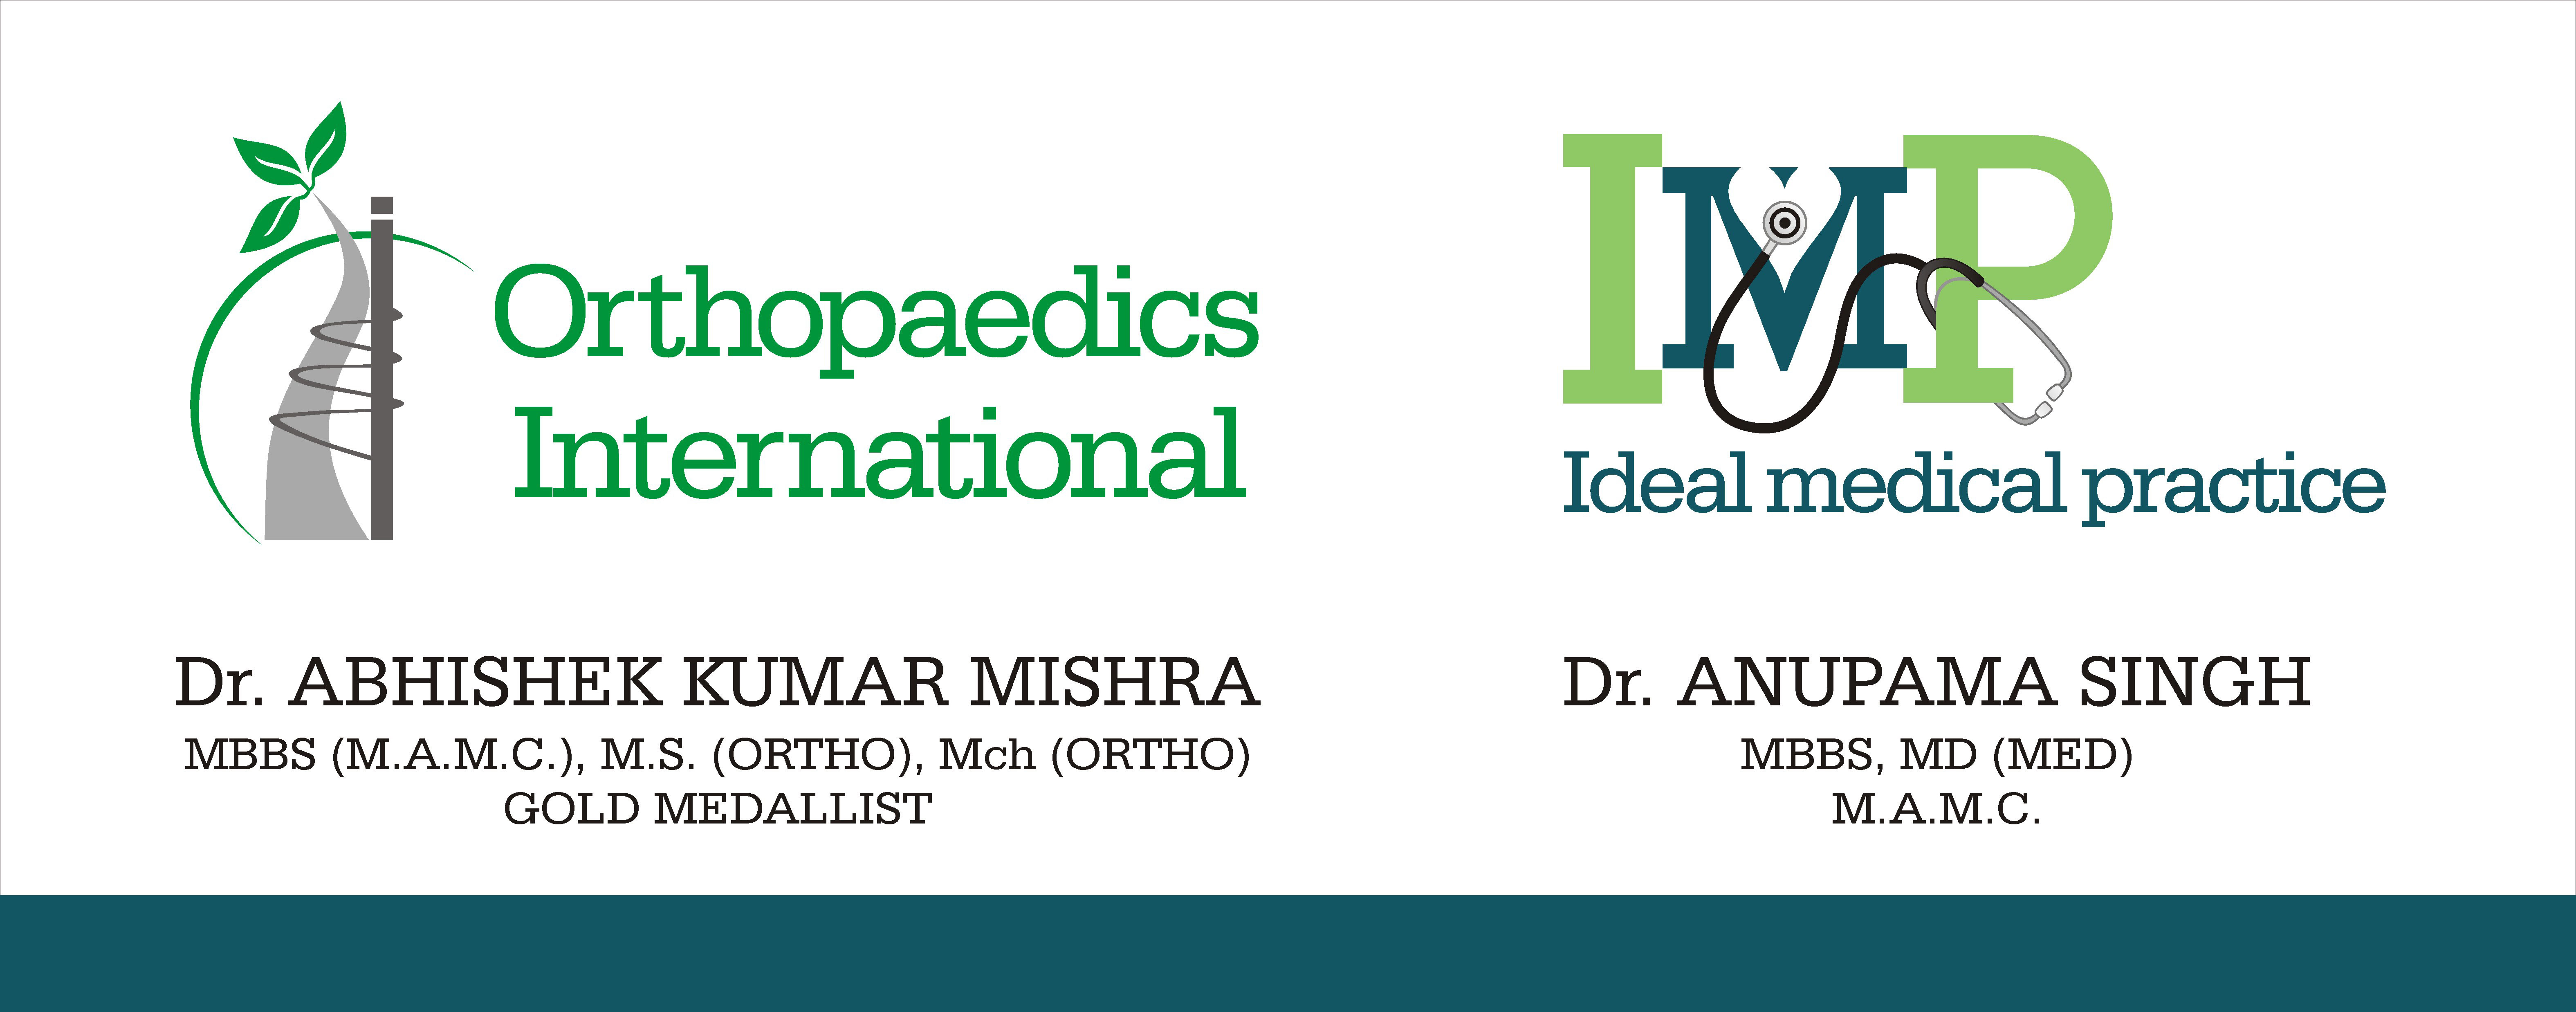 Dr. Abhishek Kumar Mishra Orthopaedics International